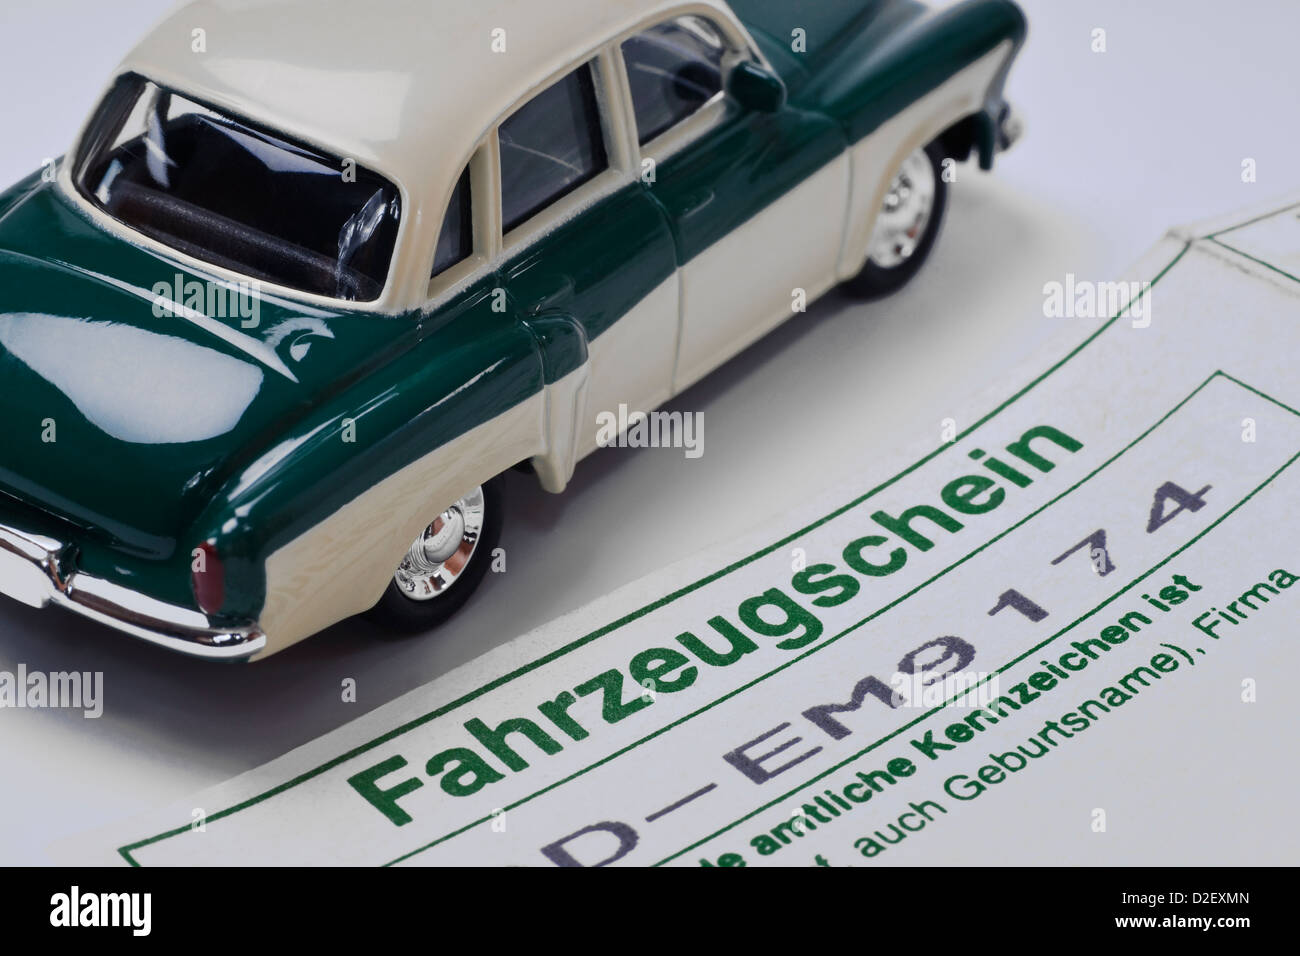 Detail photo of a vehicle registration certificate in German, alongside is a model car - Stock Image